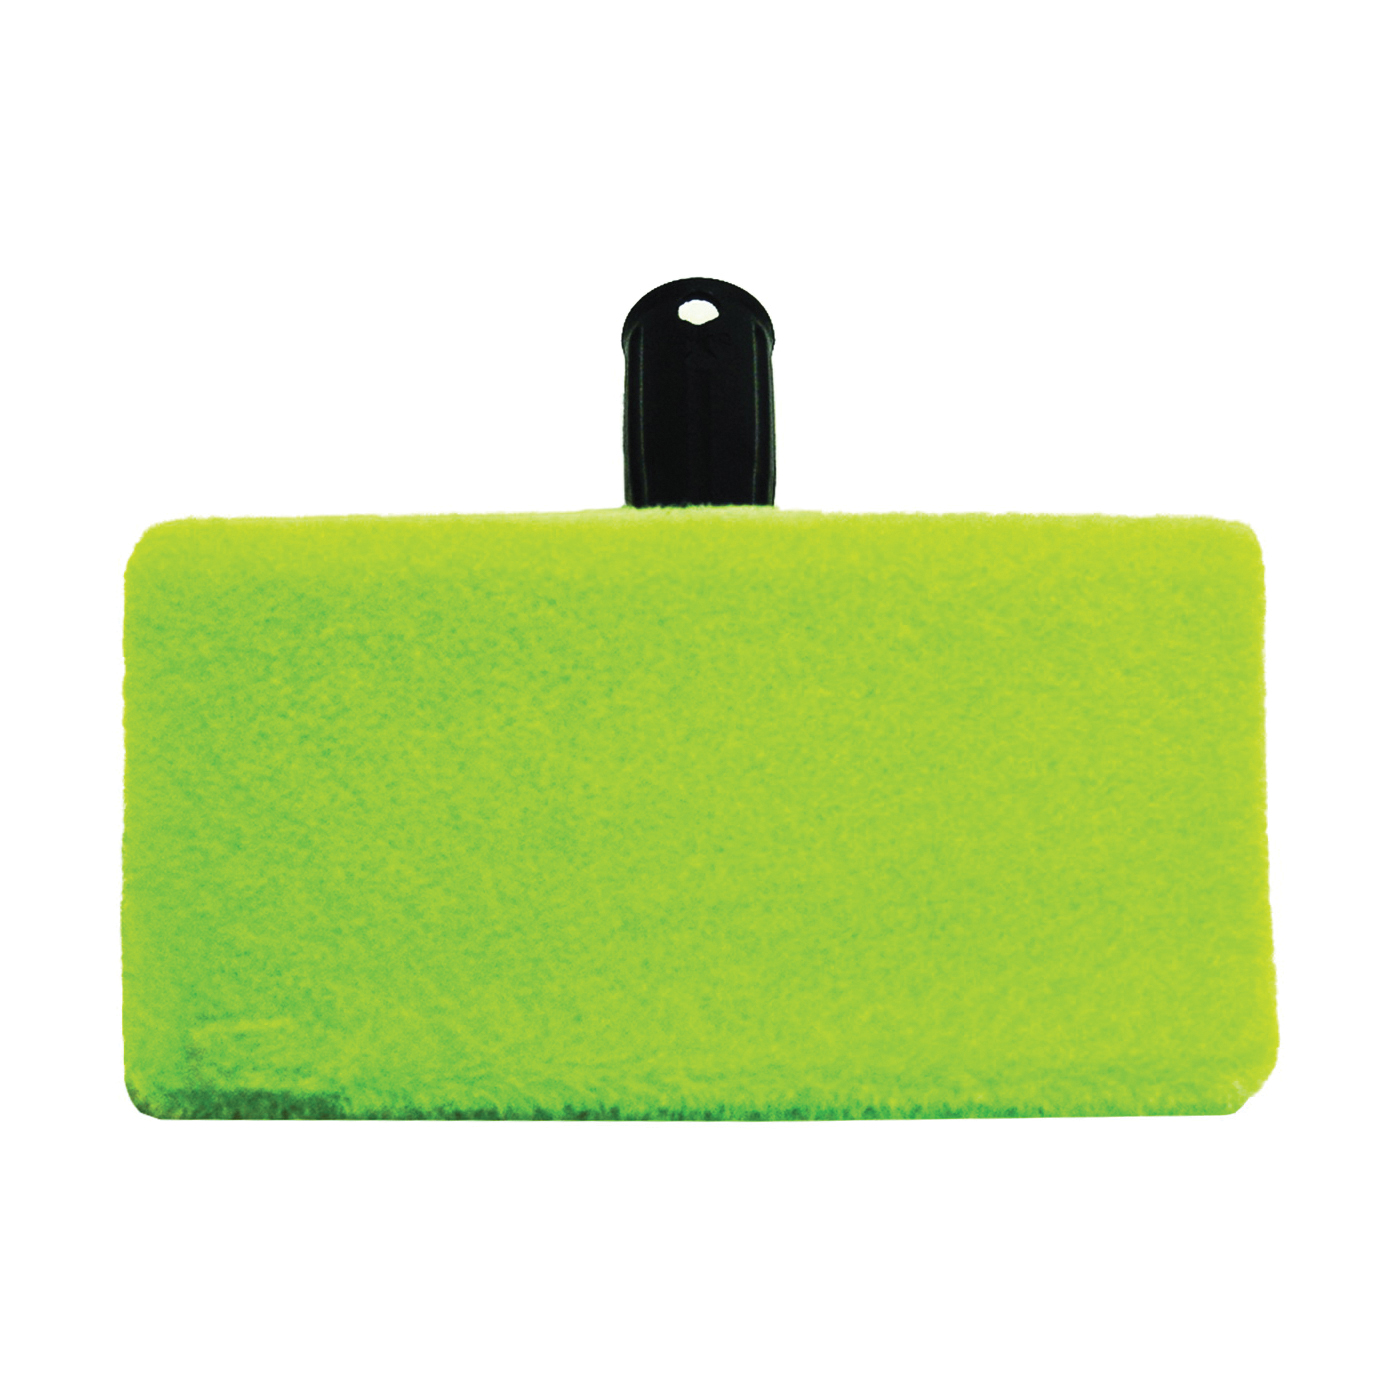 Picture of SHUR-LINE 750C Deck and Fence Pad, 7 in L Pad, 5 in W Pad